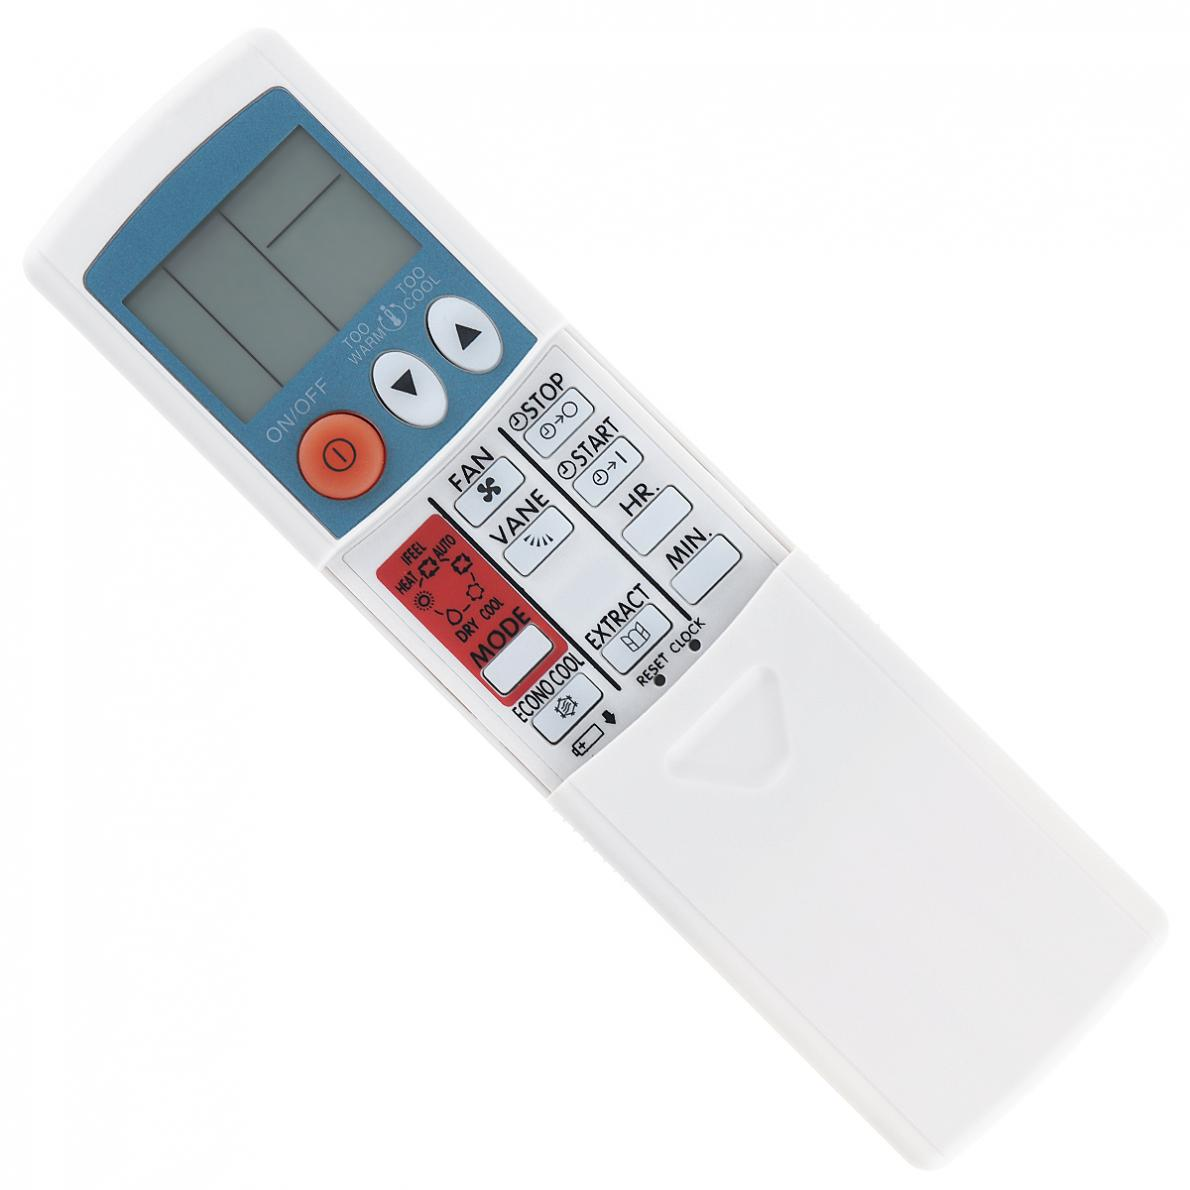 For Mitsubishi 2183P Air Condition Remote Control with Clamshell Panel Suitable and 10M Control Distance in Remote Controls from Consumer Electronics